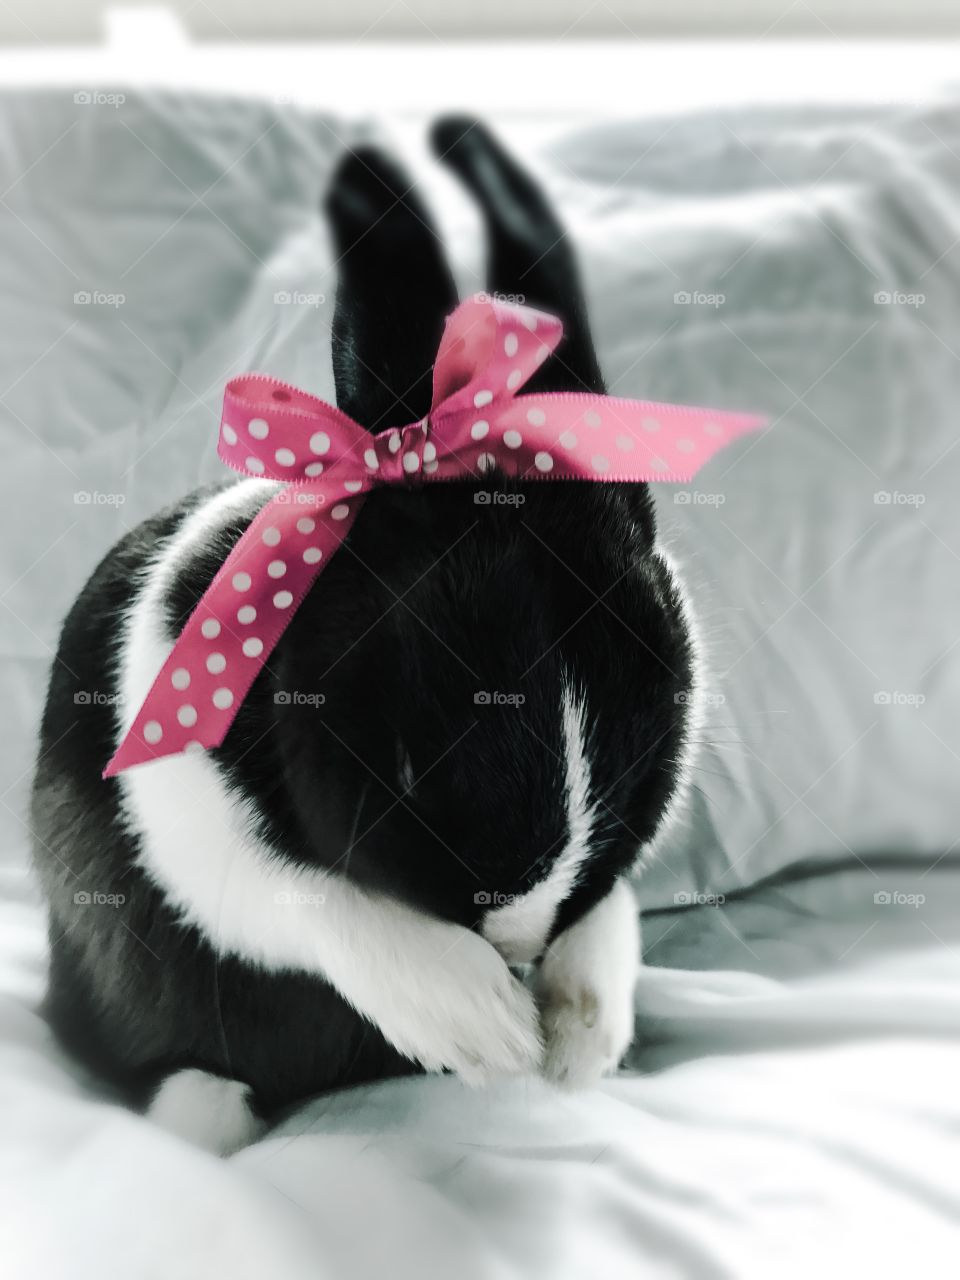 Ballerina Bunny cleaning face